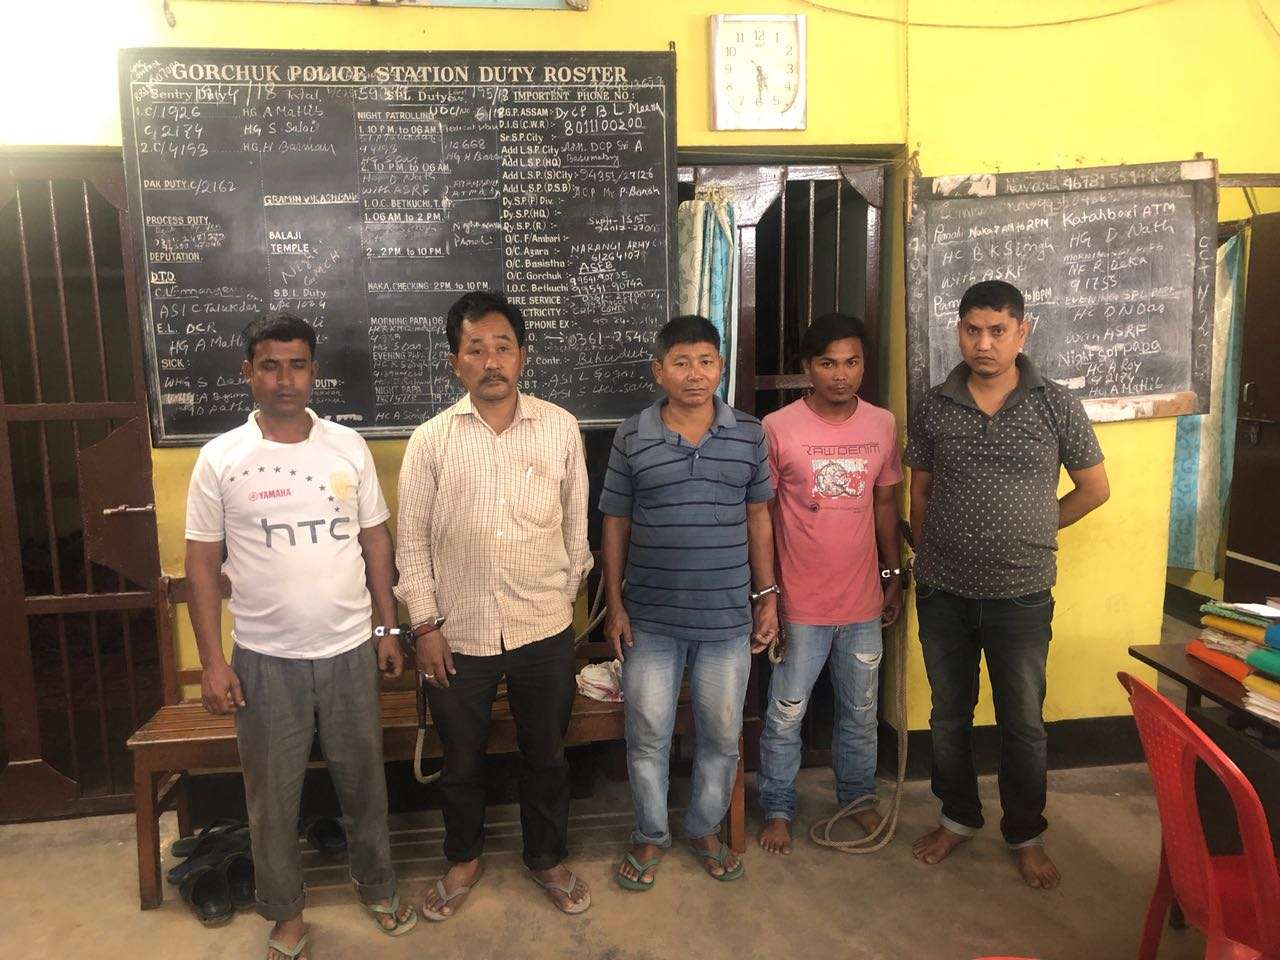 5 land grabbers arrested by Gorchuk police